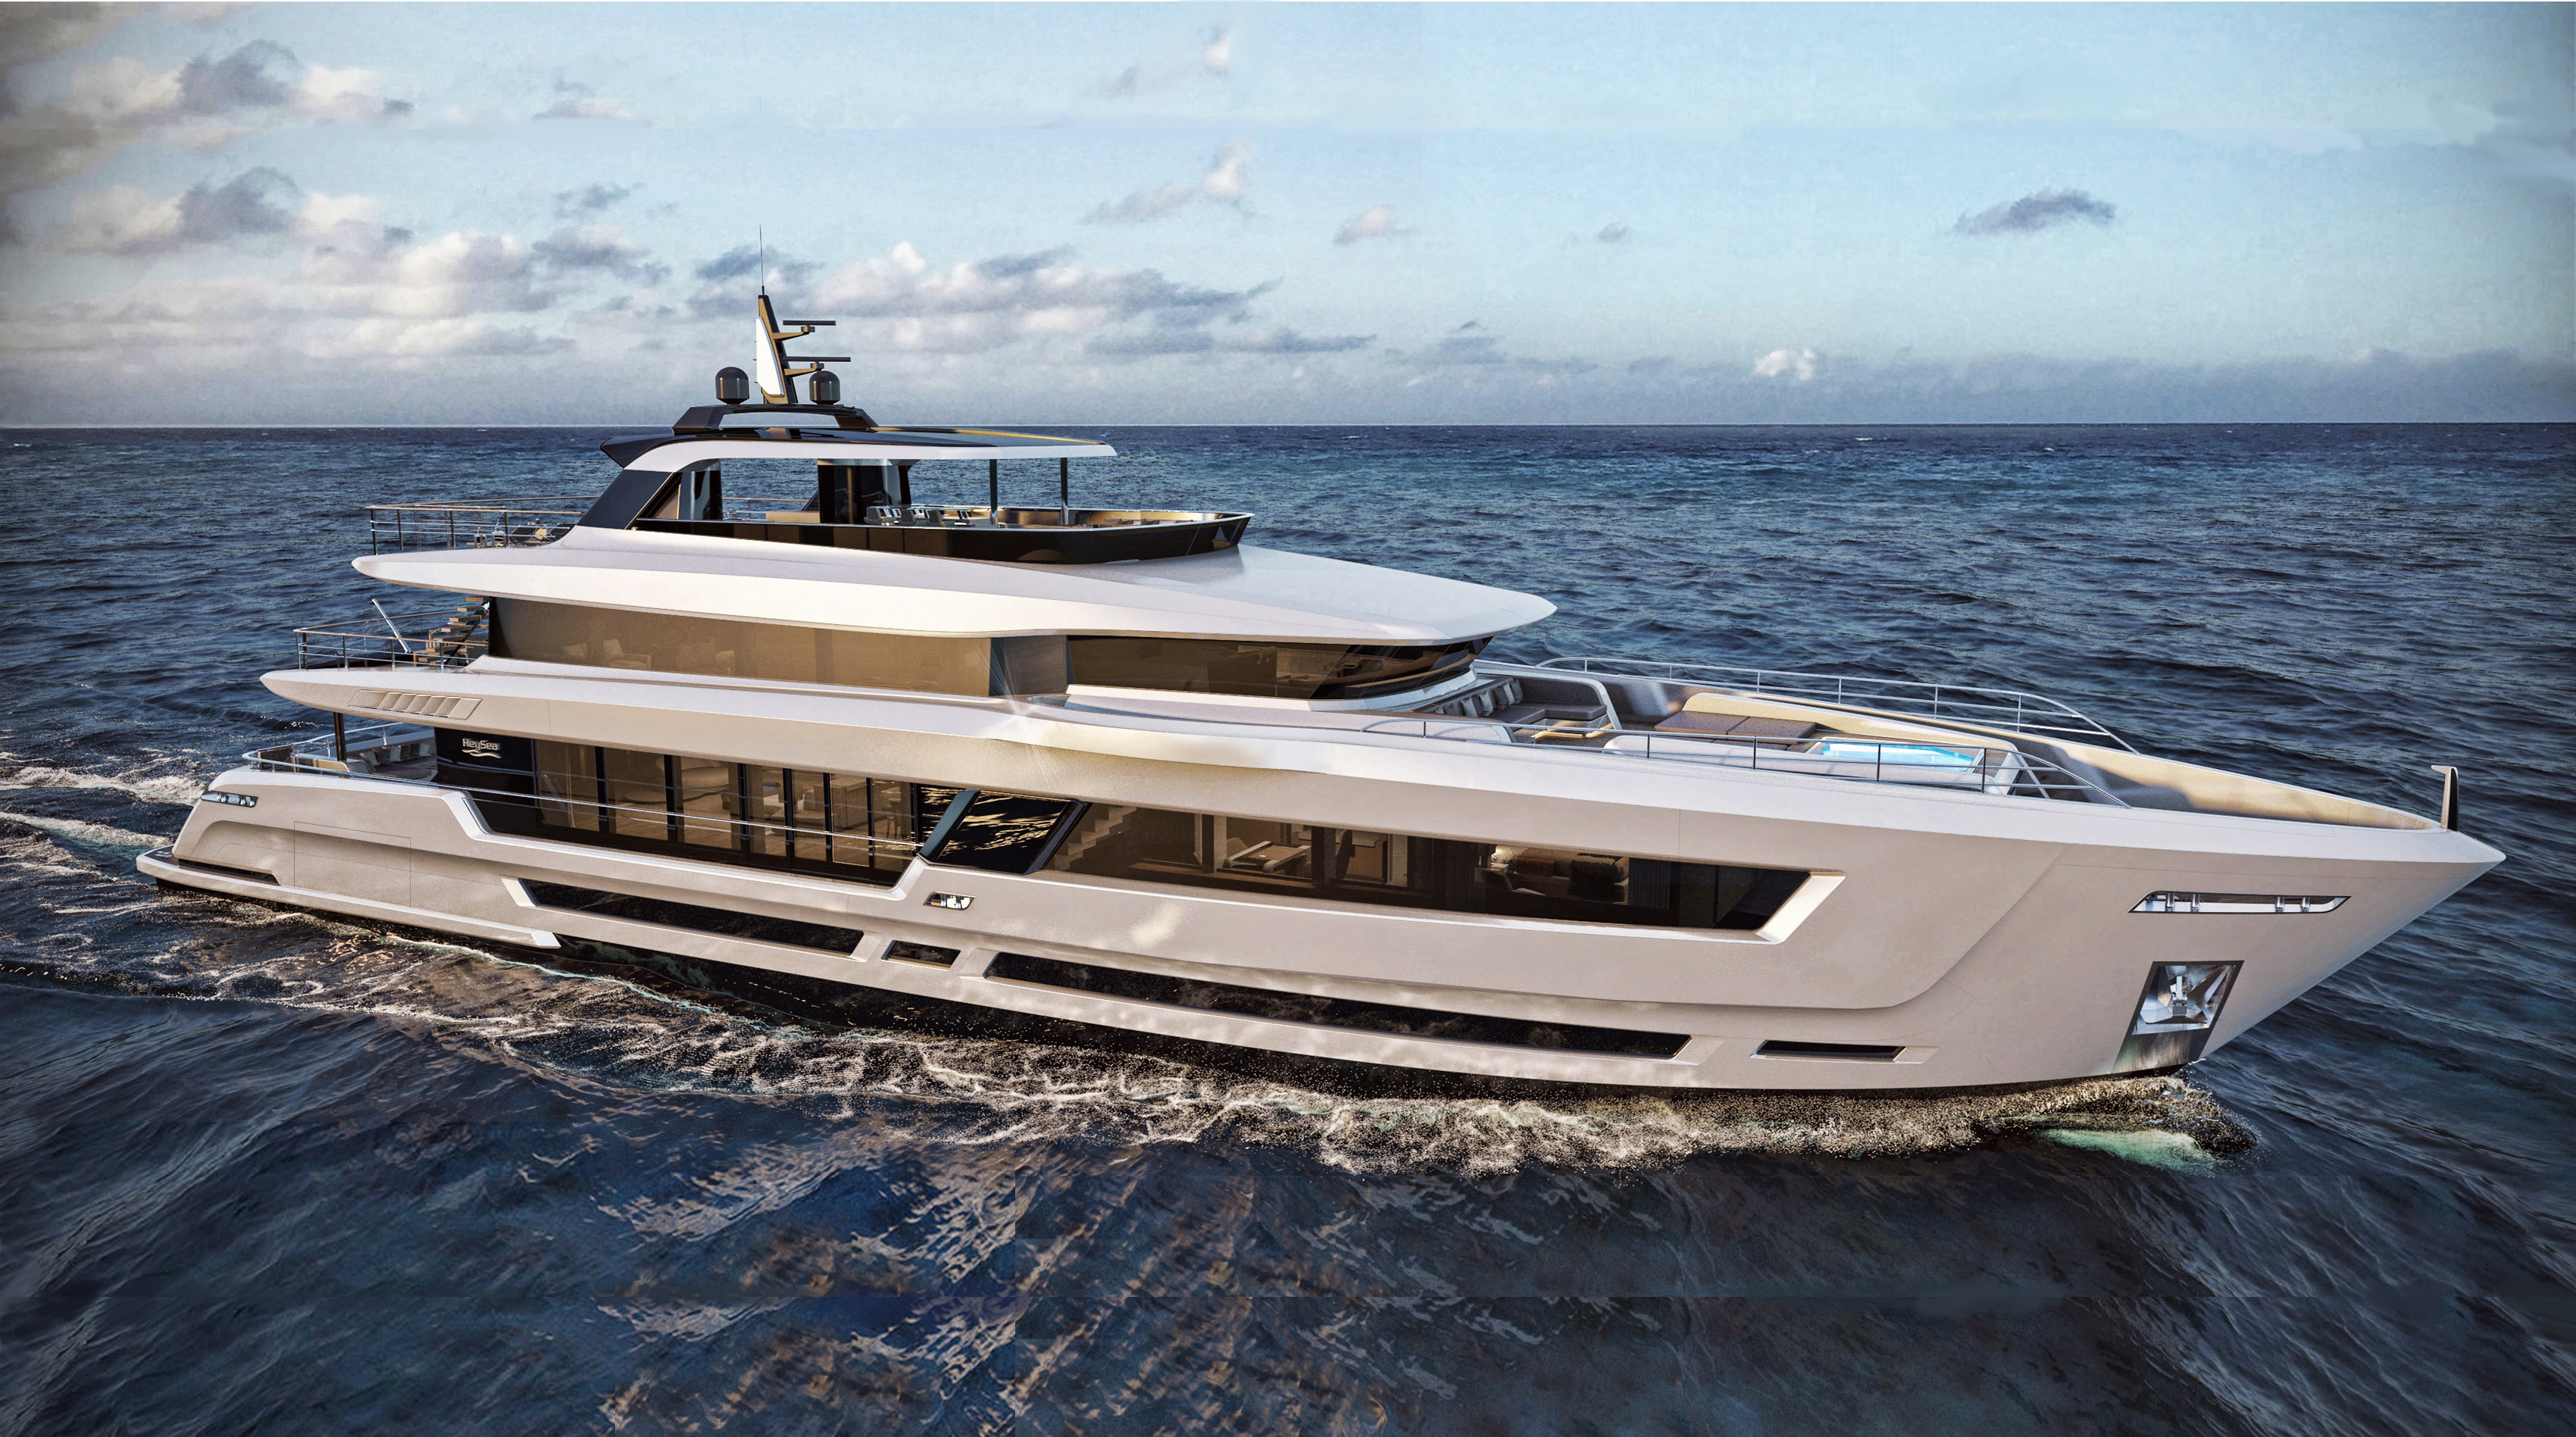 Heysea Yachts Asteria 139 superyacht under construction at Heysea